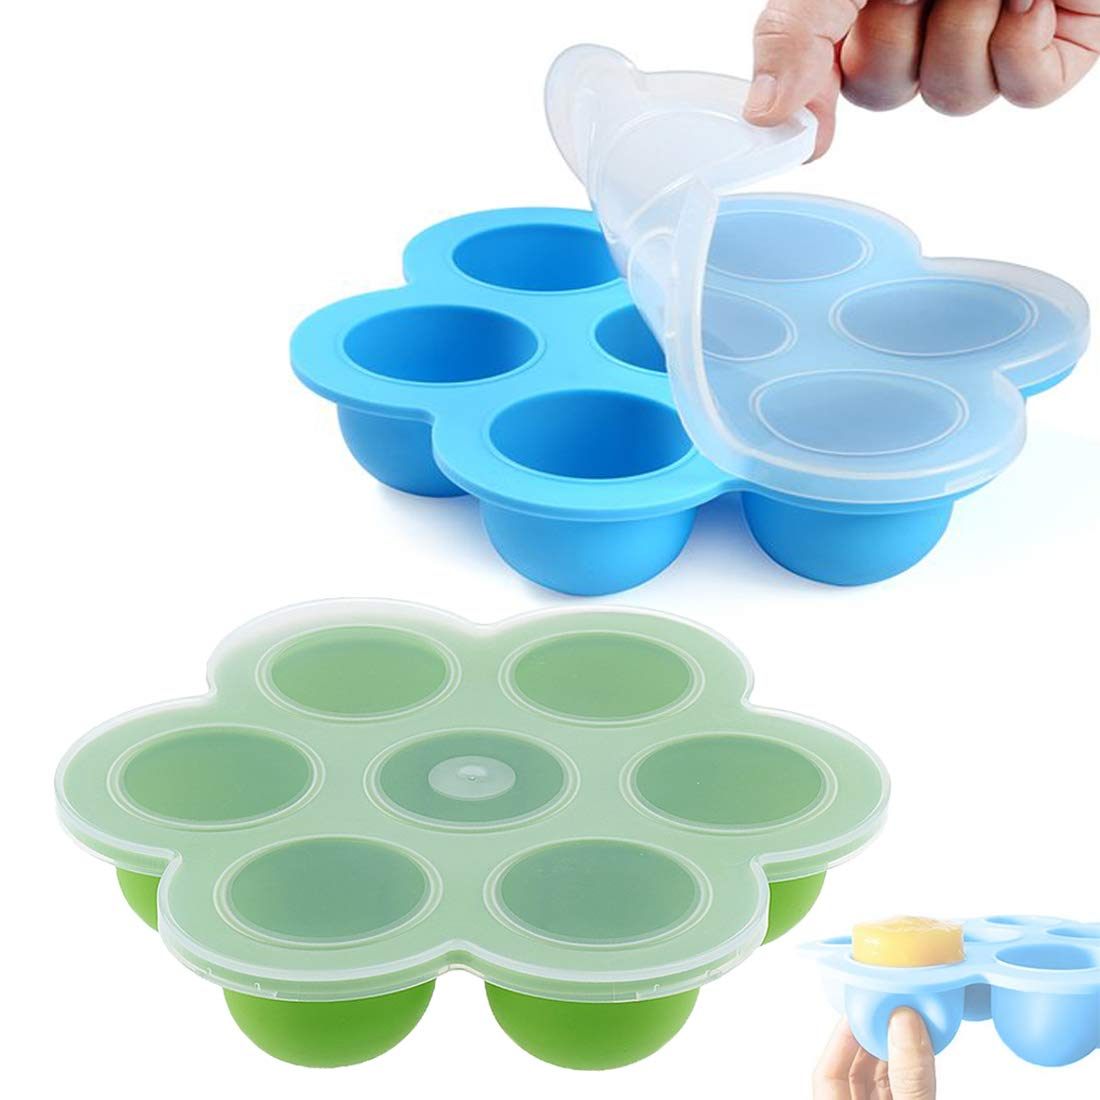 Nywoja Baby Food Storage Tray Silicone With Lid Egg Bite Molds Pressure Cooker Food Storage Freezer Tray Container Baking Mold FDA Approval Eco-friendly for 6/8 Quart Instant Pot Sous Vide Oven 2 Pack